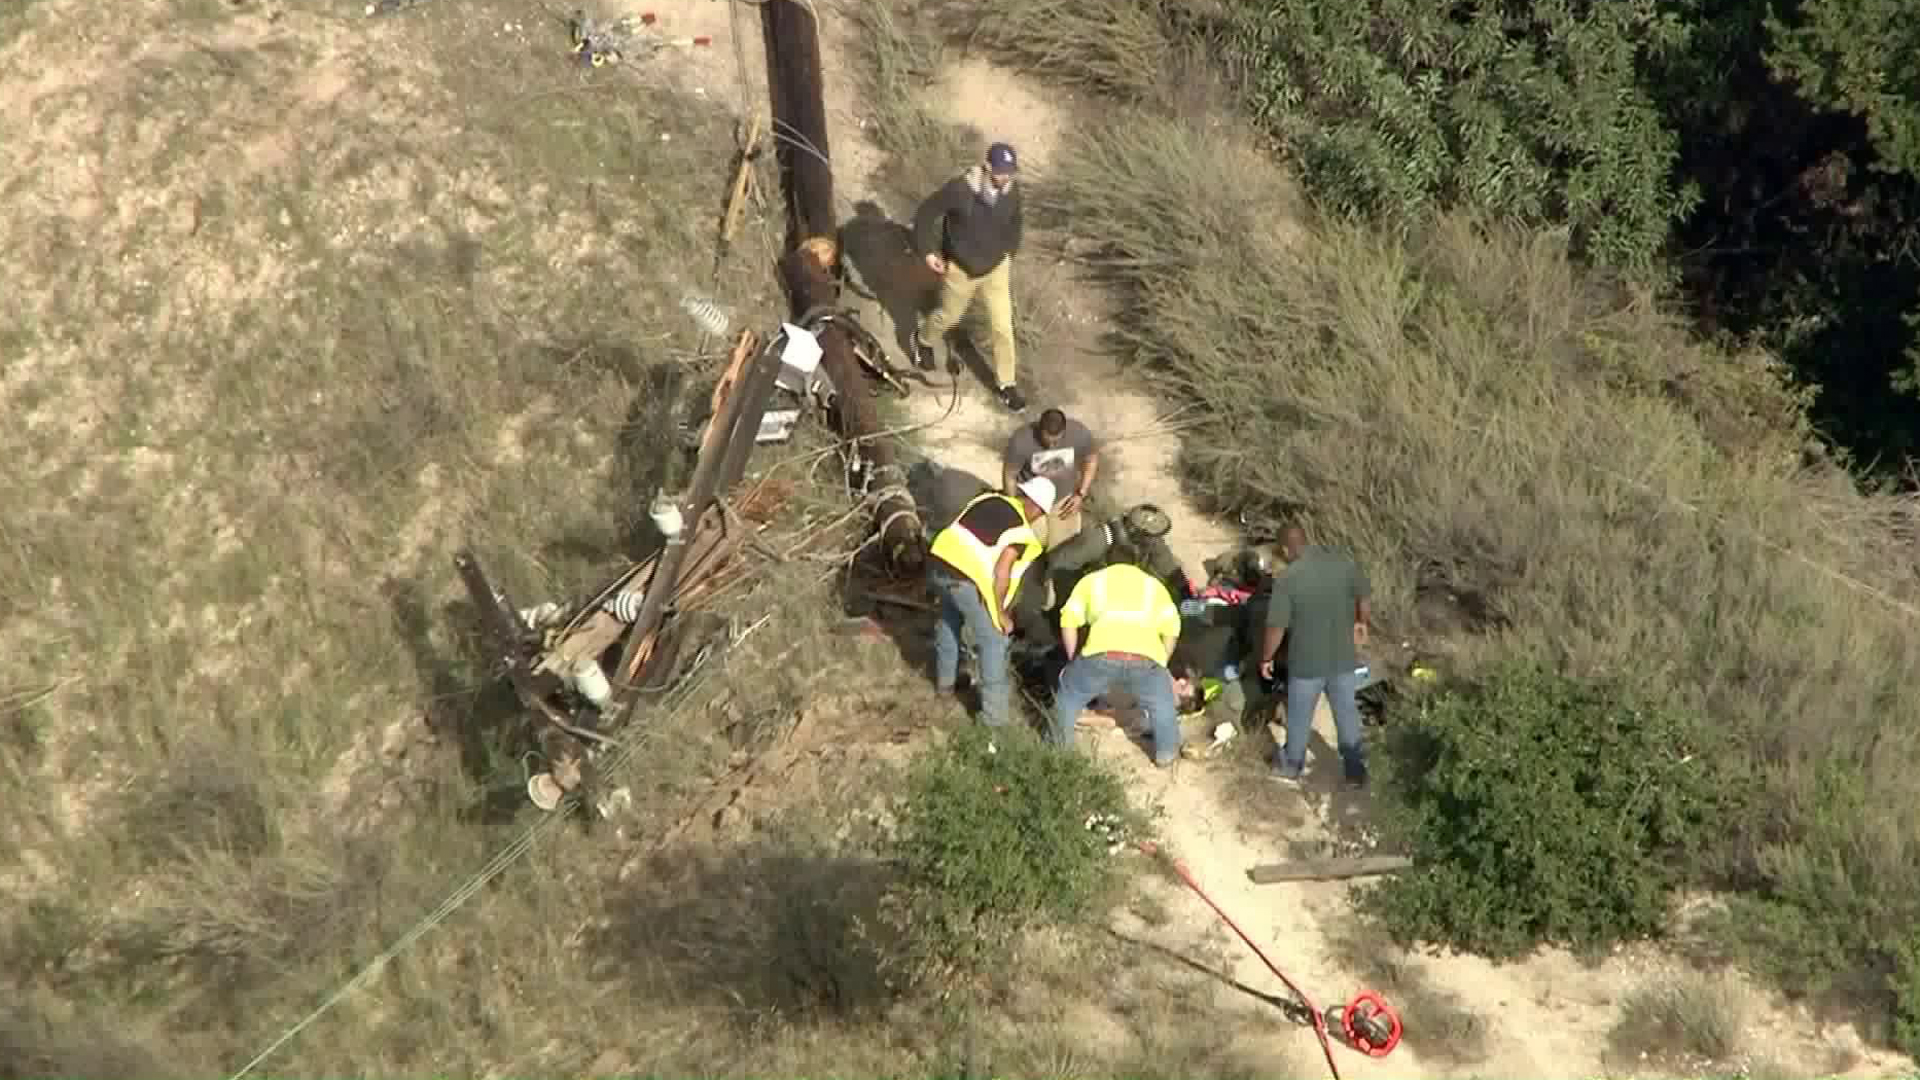 A utility pole fell in Lopez Canyon on Dec. 17, 2018, injuring two workers, authorities say. (Credit: KTLA)